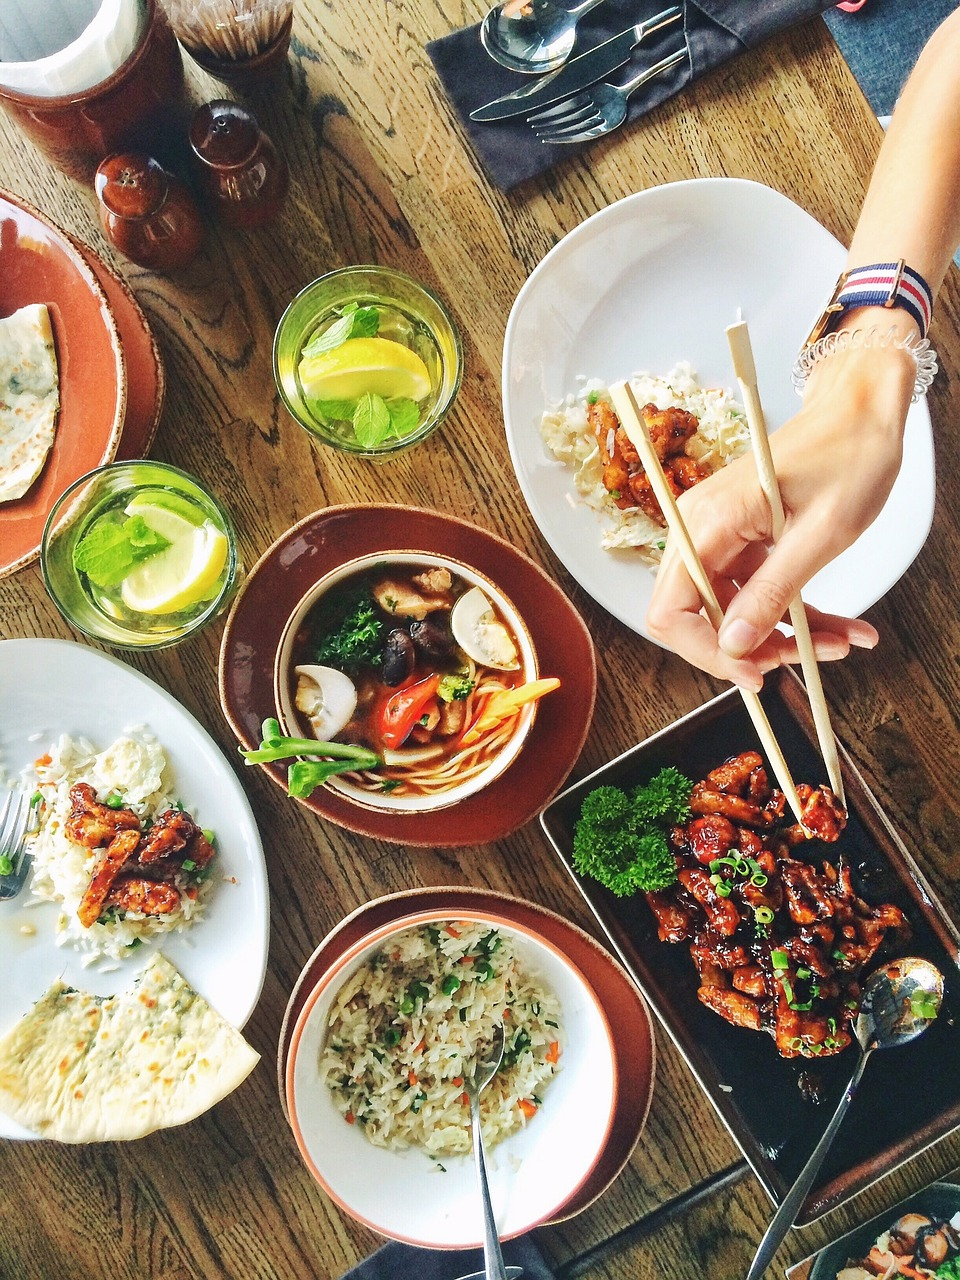 Photo of table with food and hand holding chopsticks.